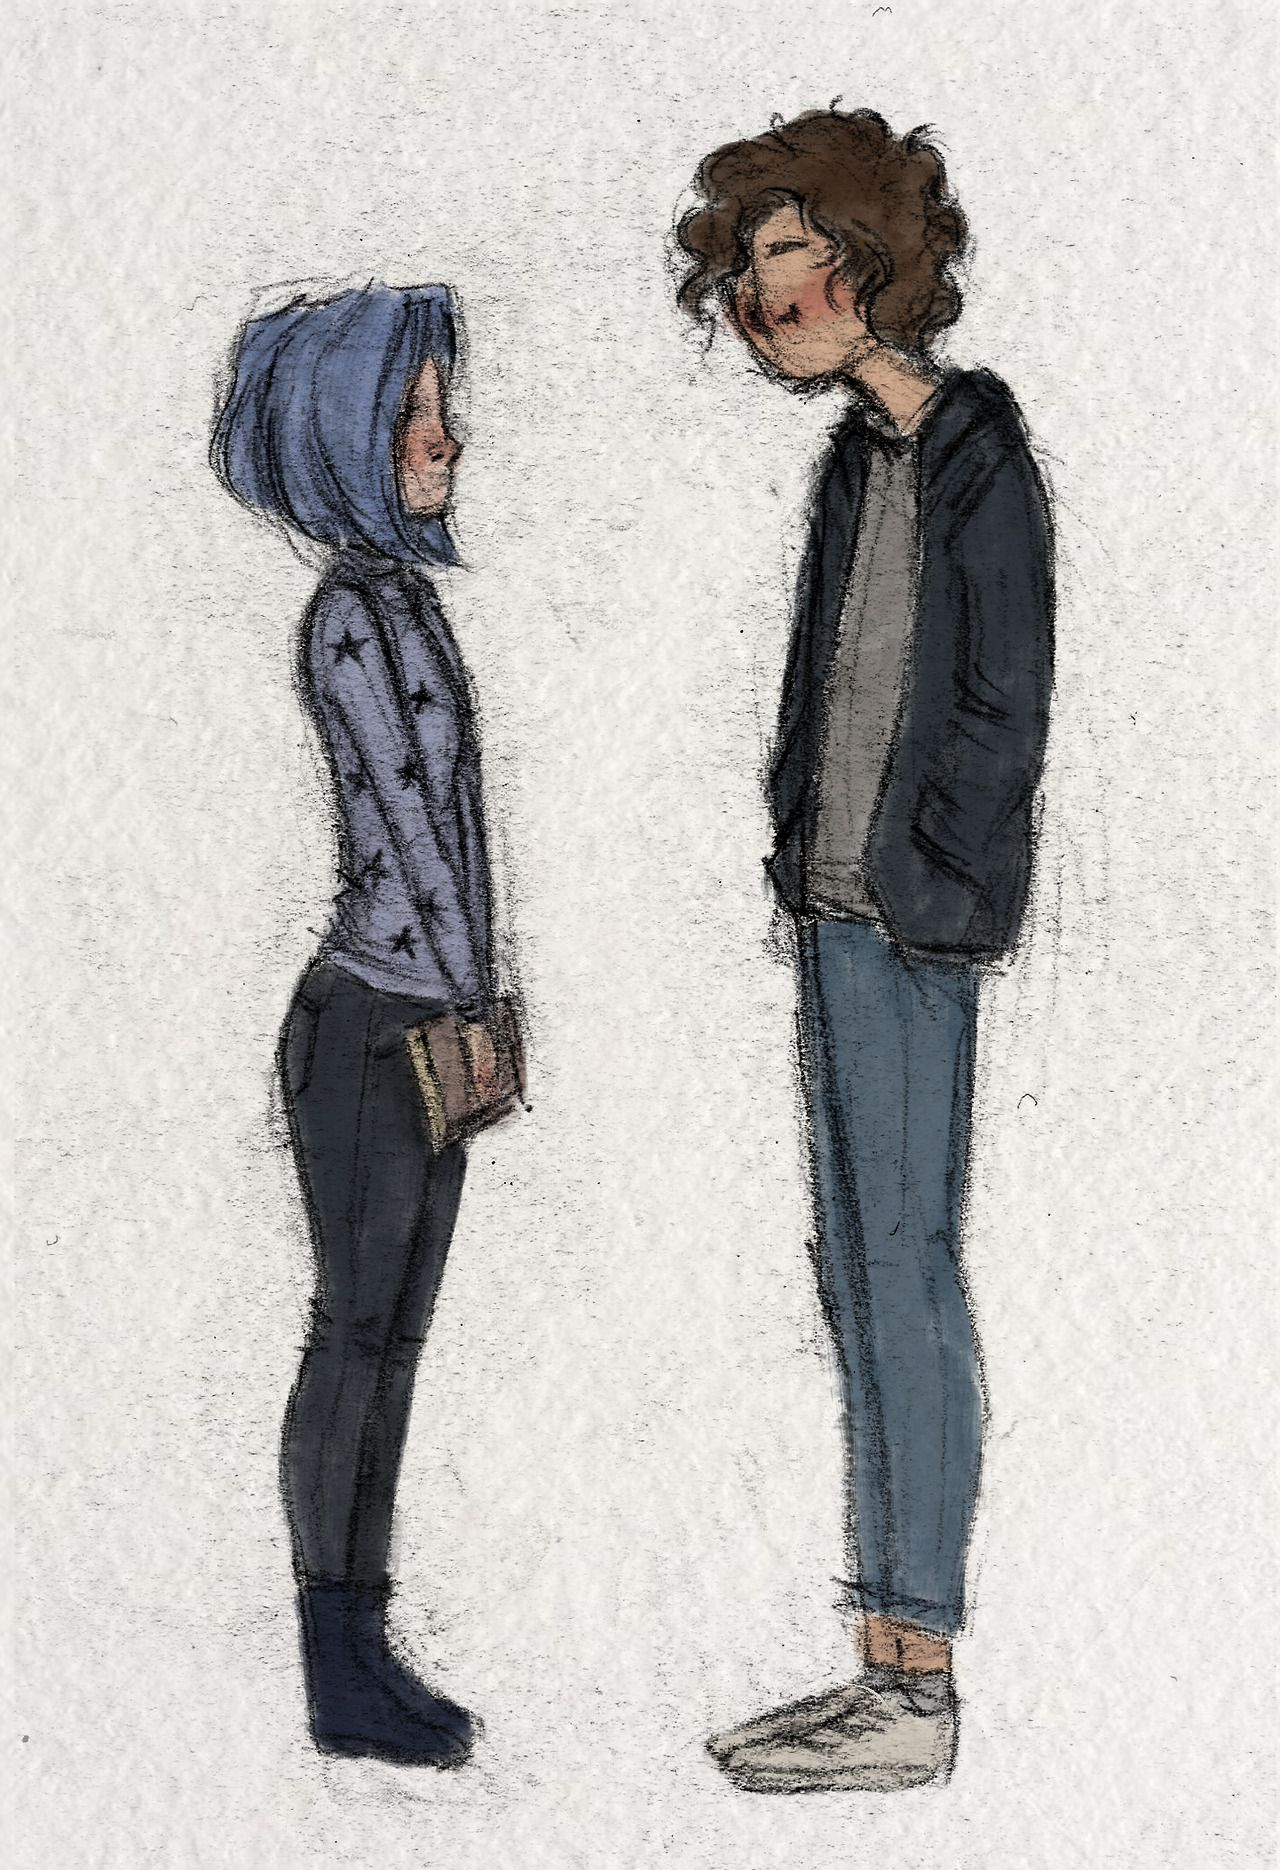 Wybie Tumblr Coraline Art Coraline Drawing Coraline